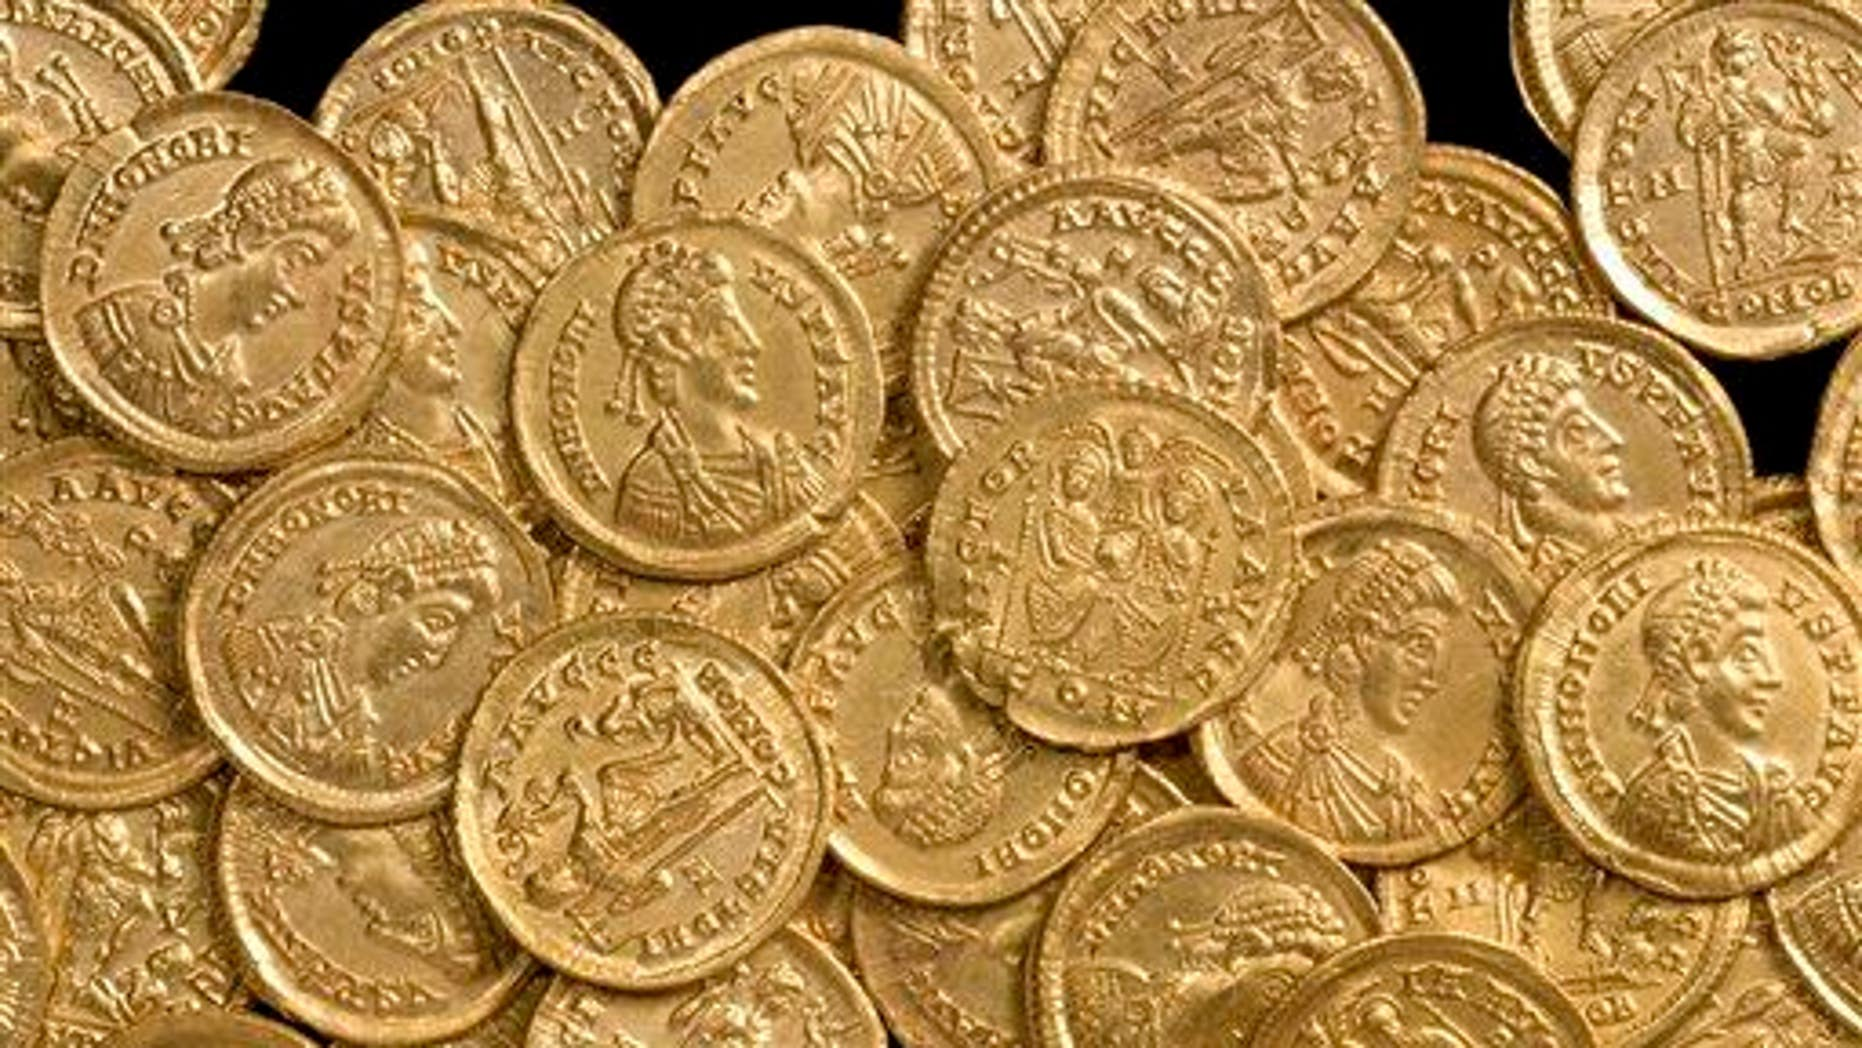 Different Roman coins are shown.